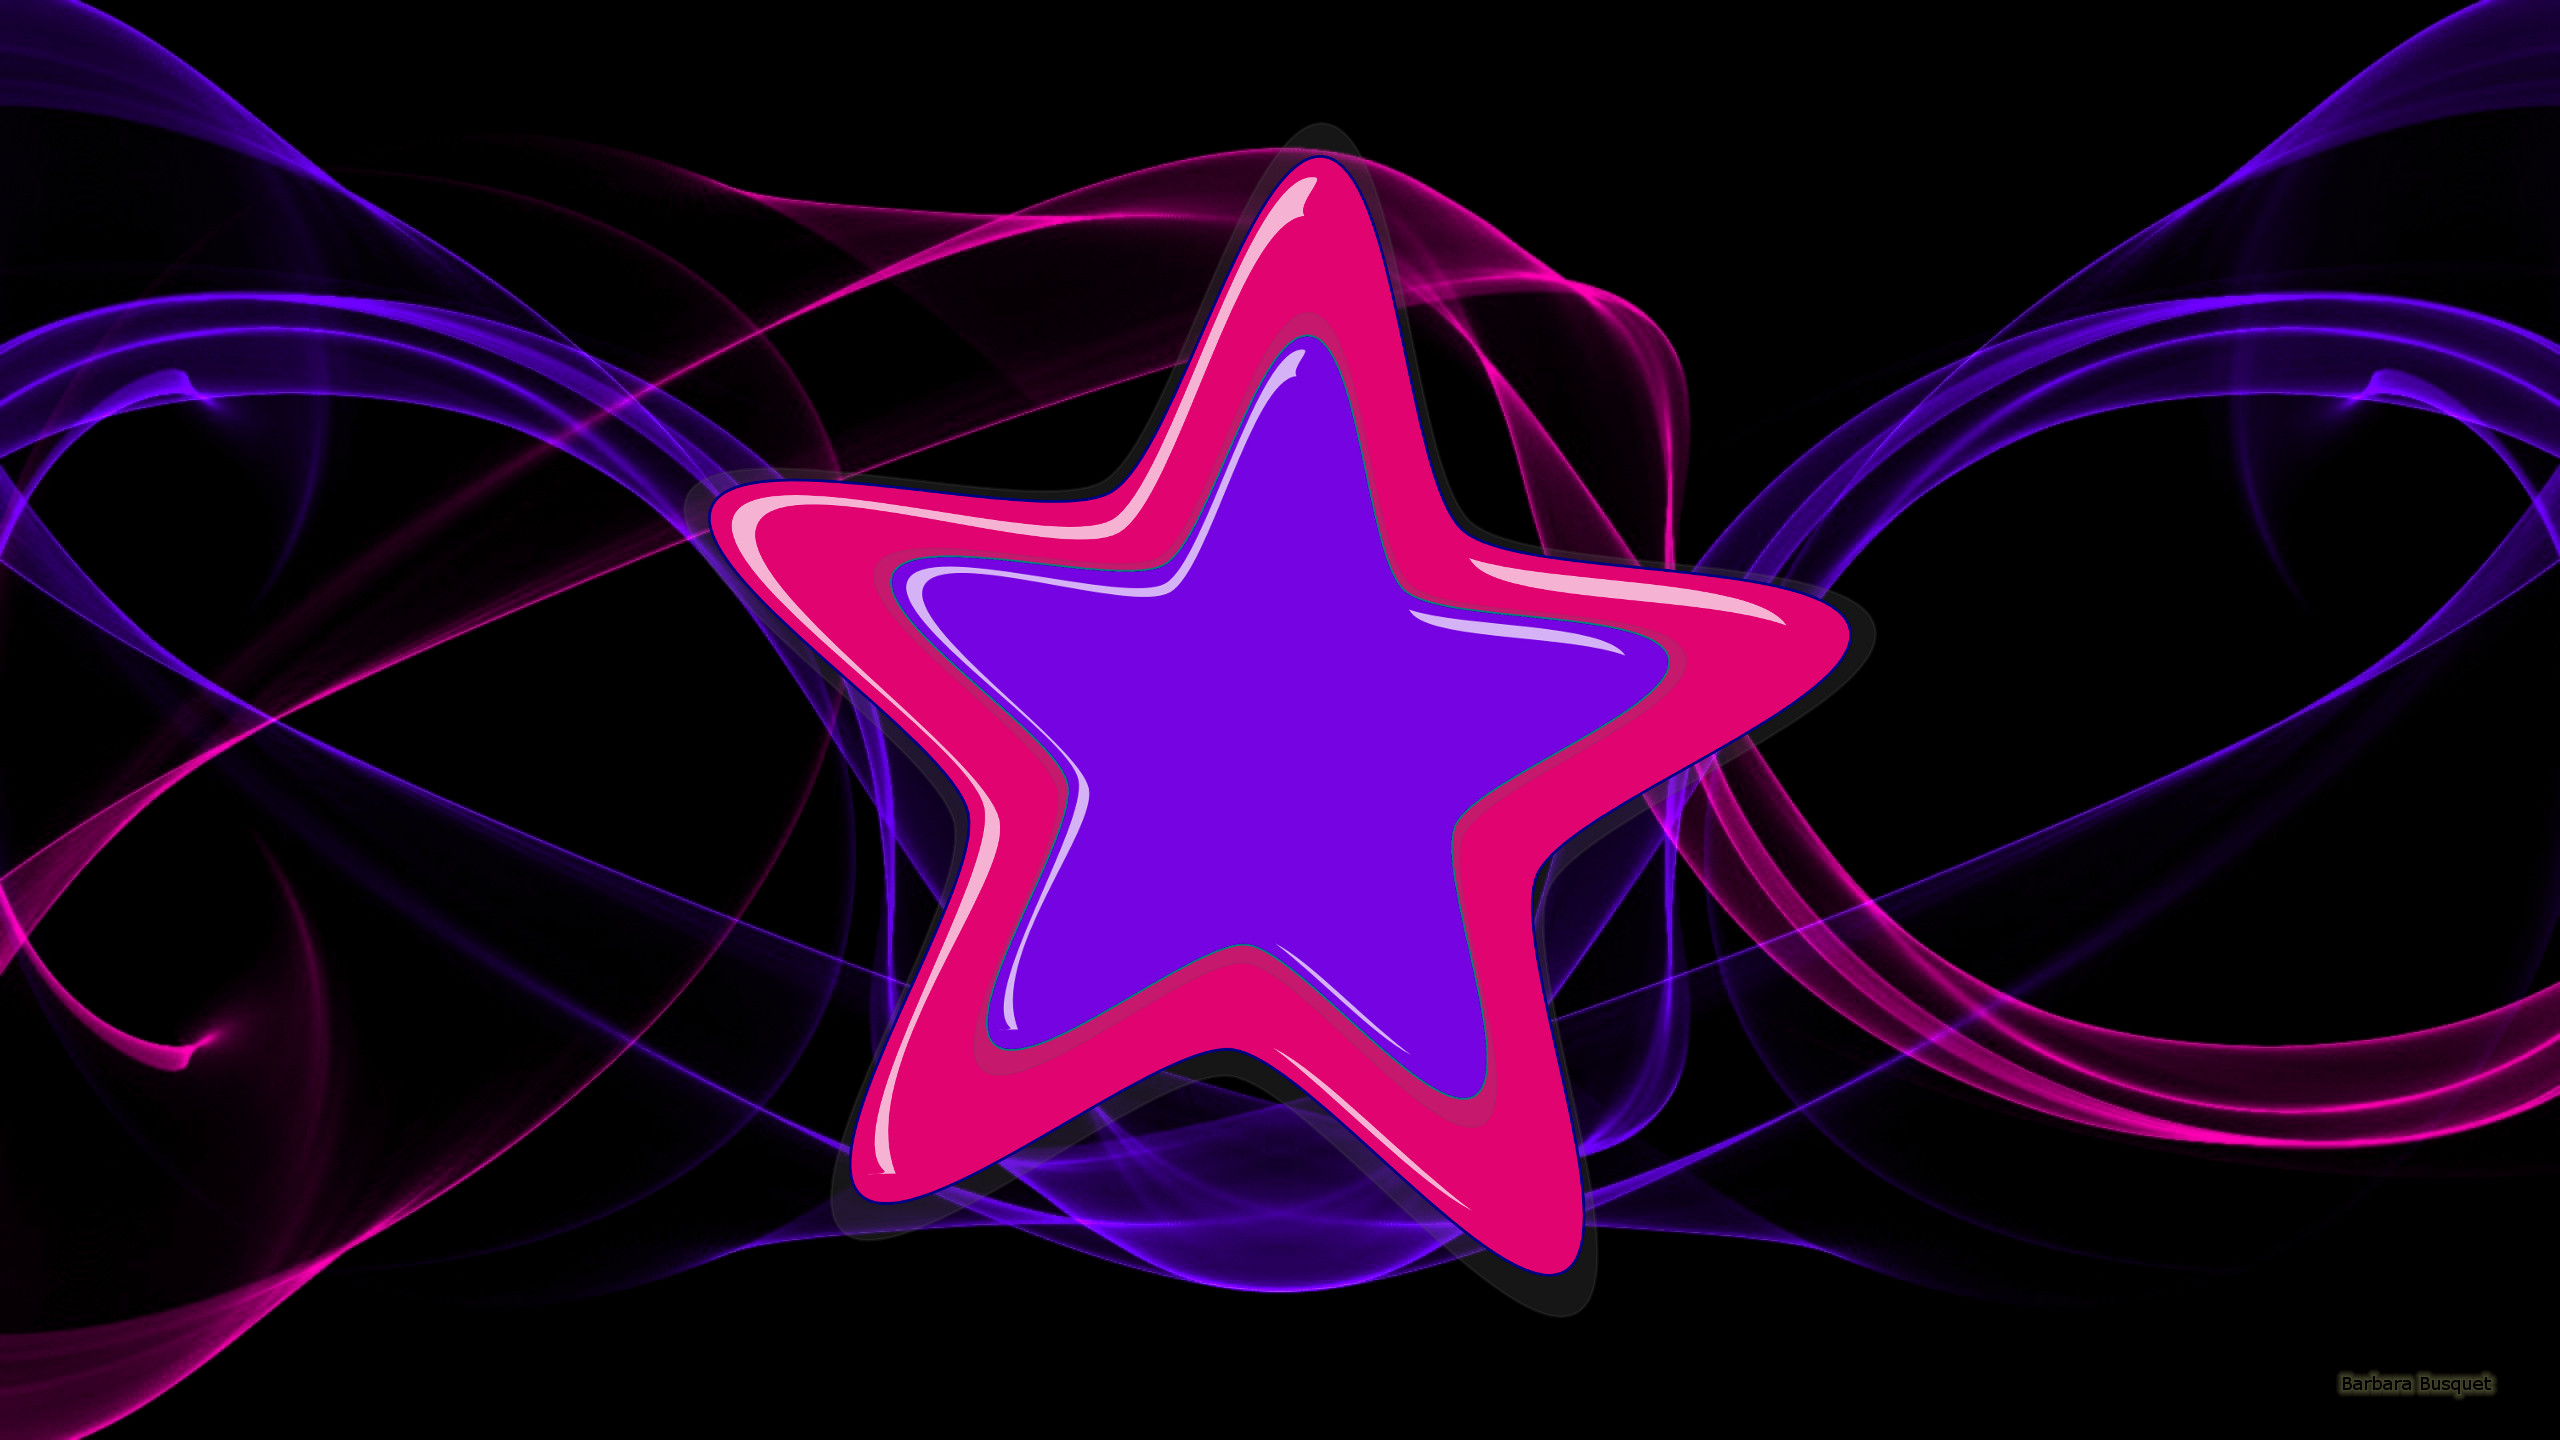 Black wallpaper with purple and pink stars.